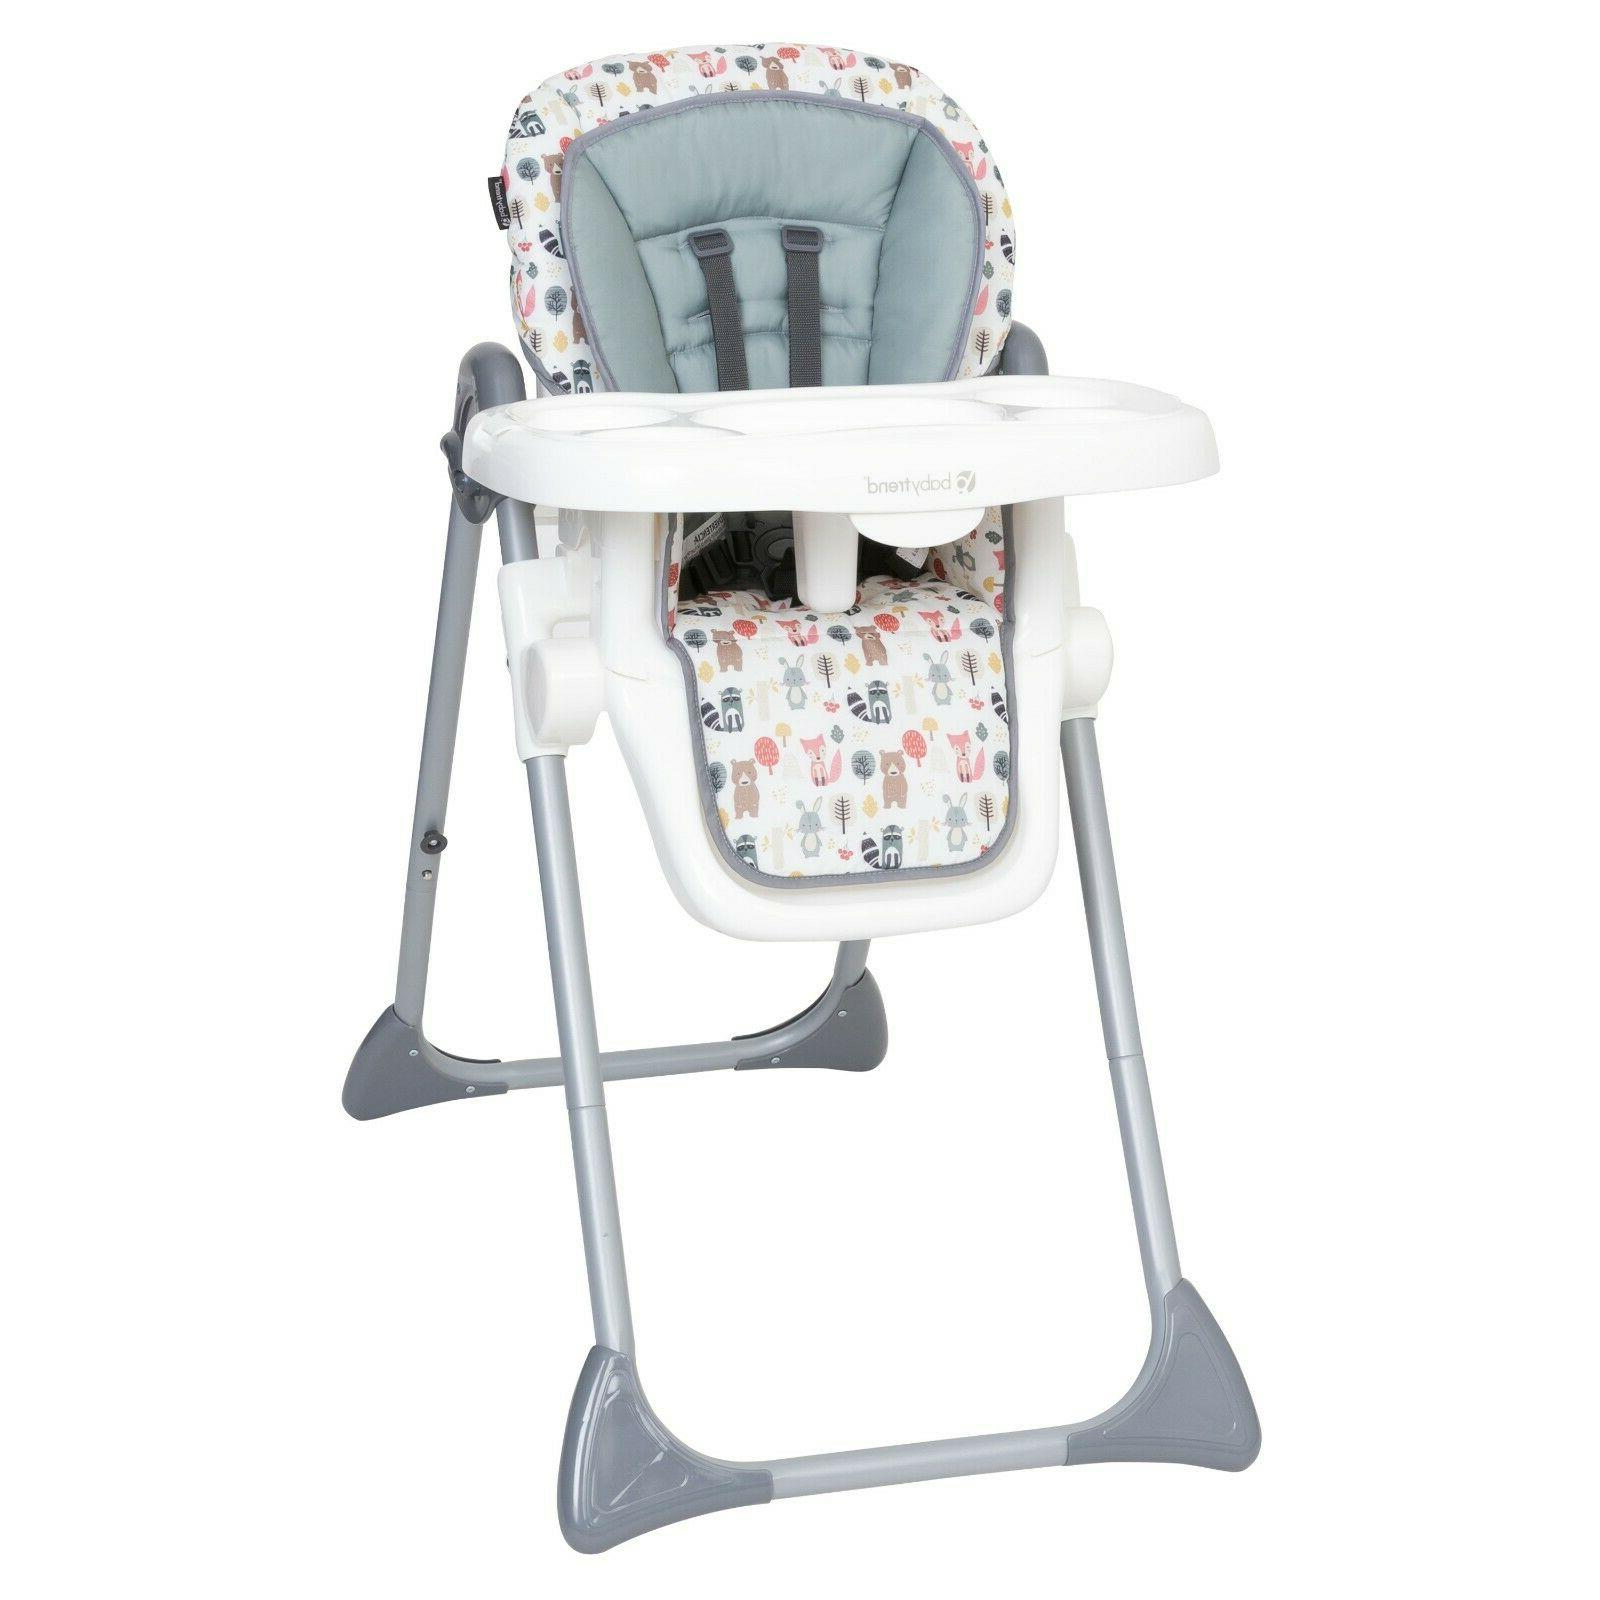 baby high chair sturdy adjustable height 3